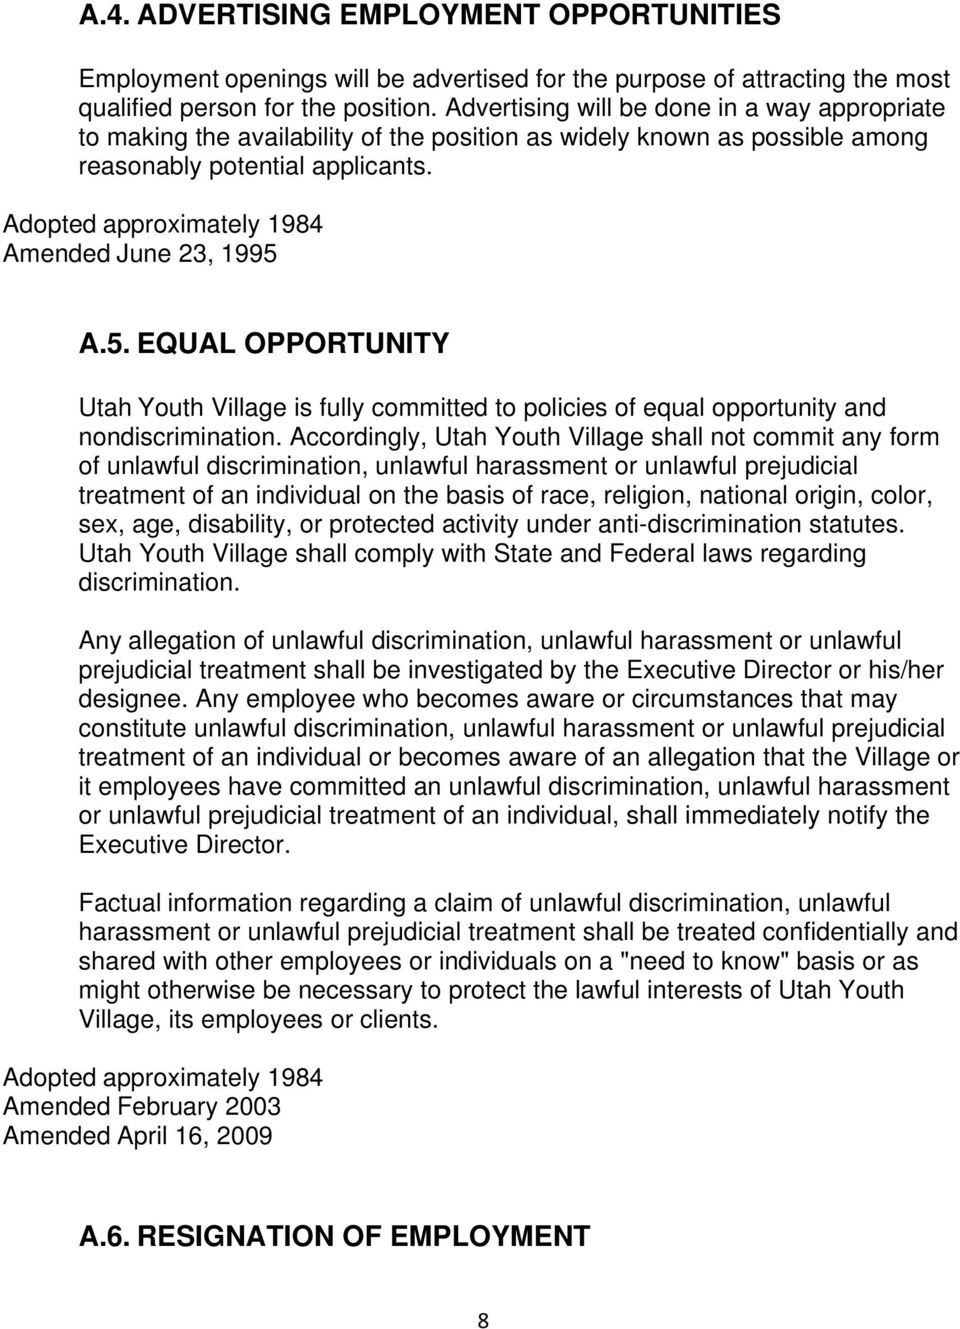 Adopted approximately 1984 Amended June 23, 1995 A.5. EQUAL OPPORTUNITY Utah Youth Village is fully committed to policies of equal opportunity and nondiscrimination.